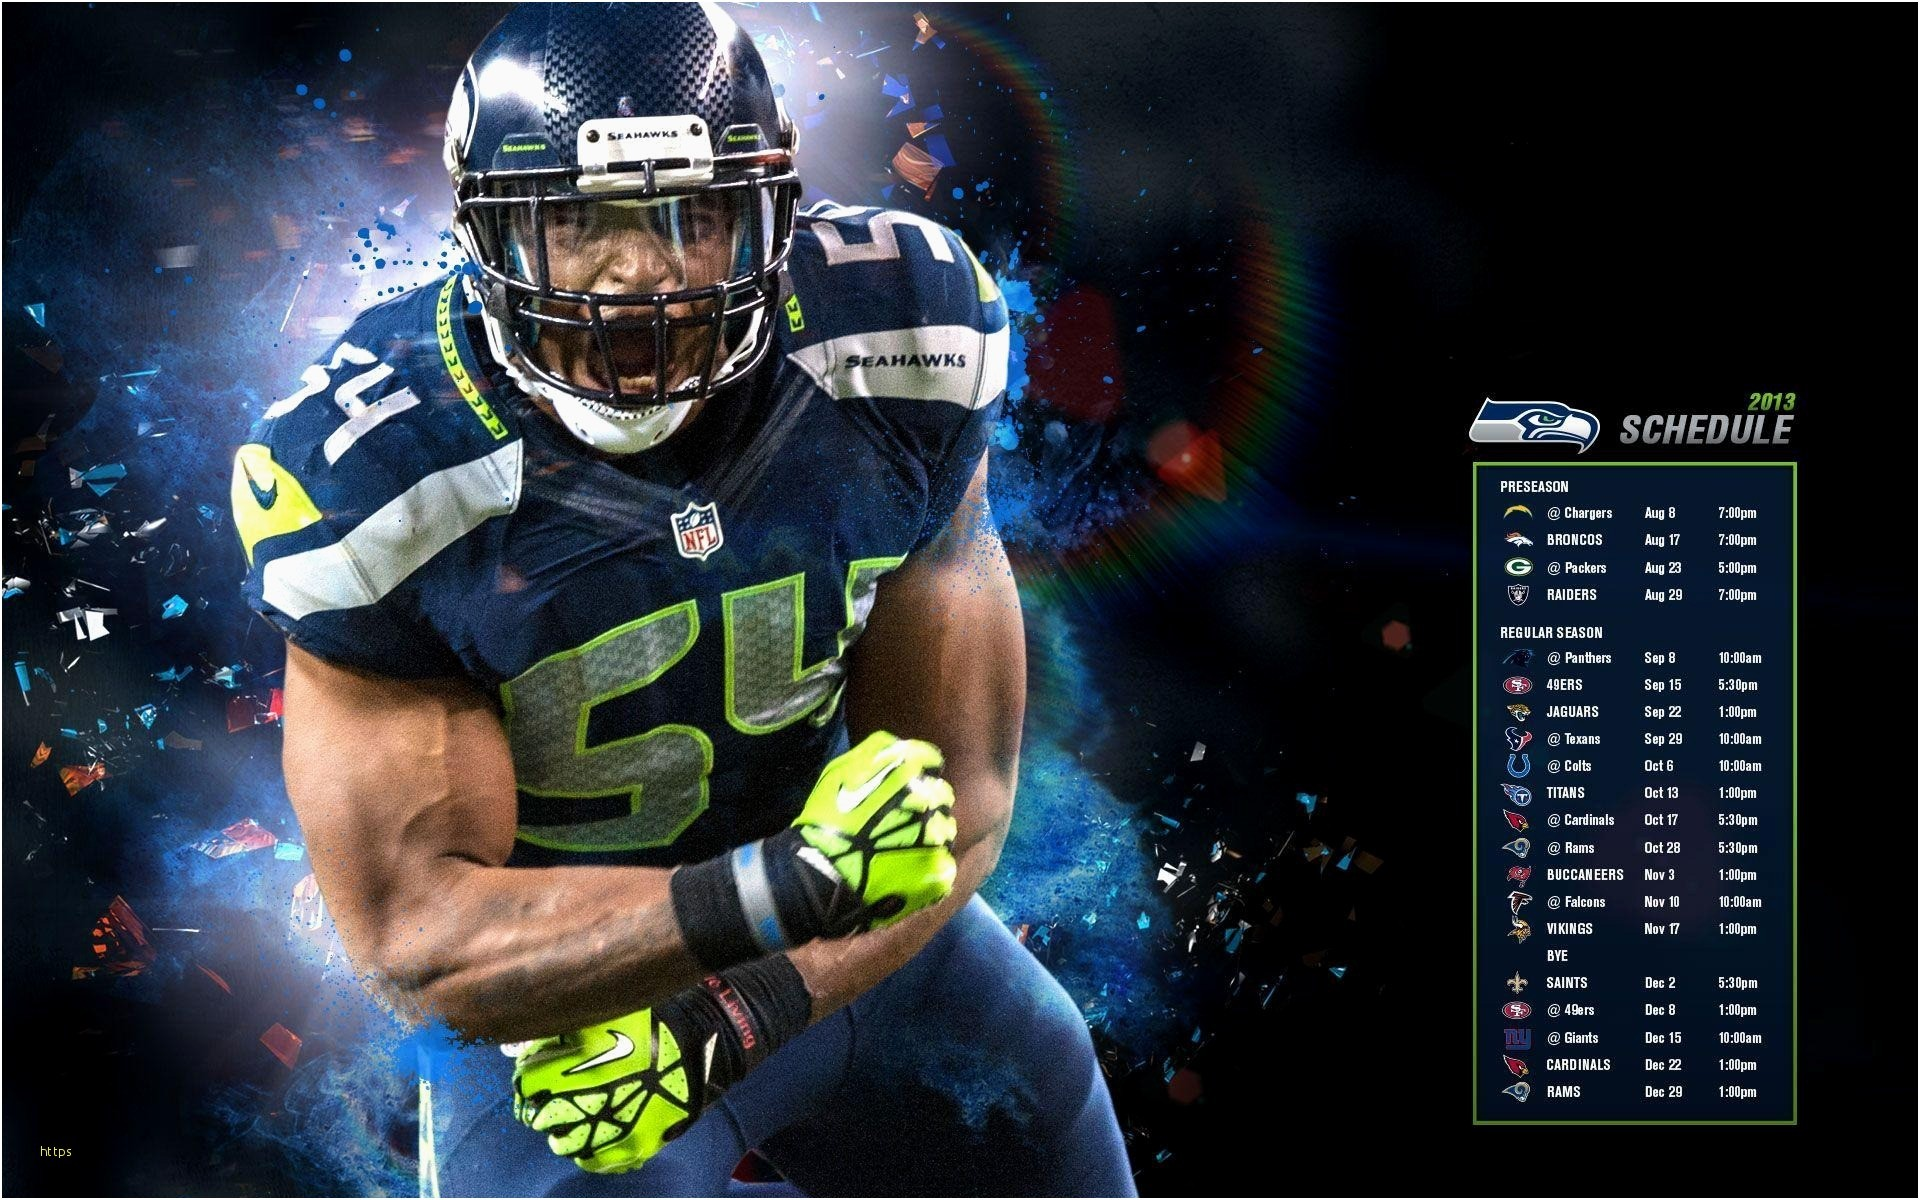 1920x1200 Seahawks Wallpaper Lovely Seattle Seahawks Wallpapers Wallpaper Cave